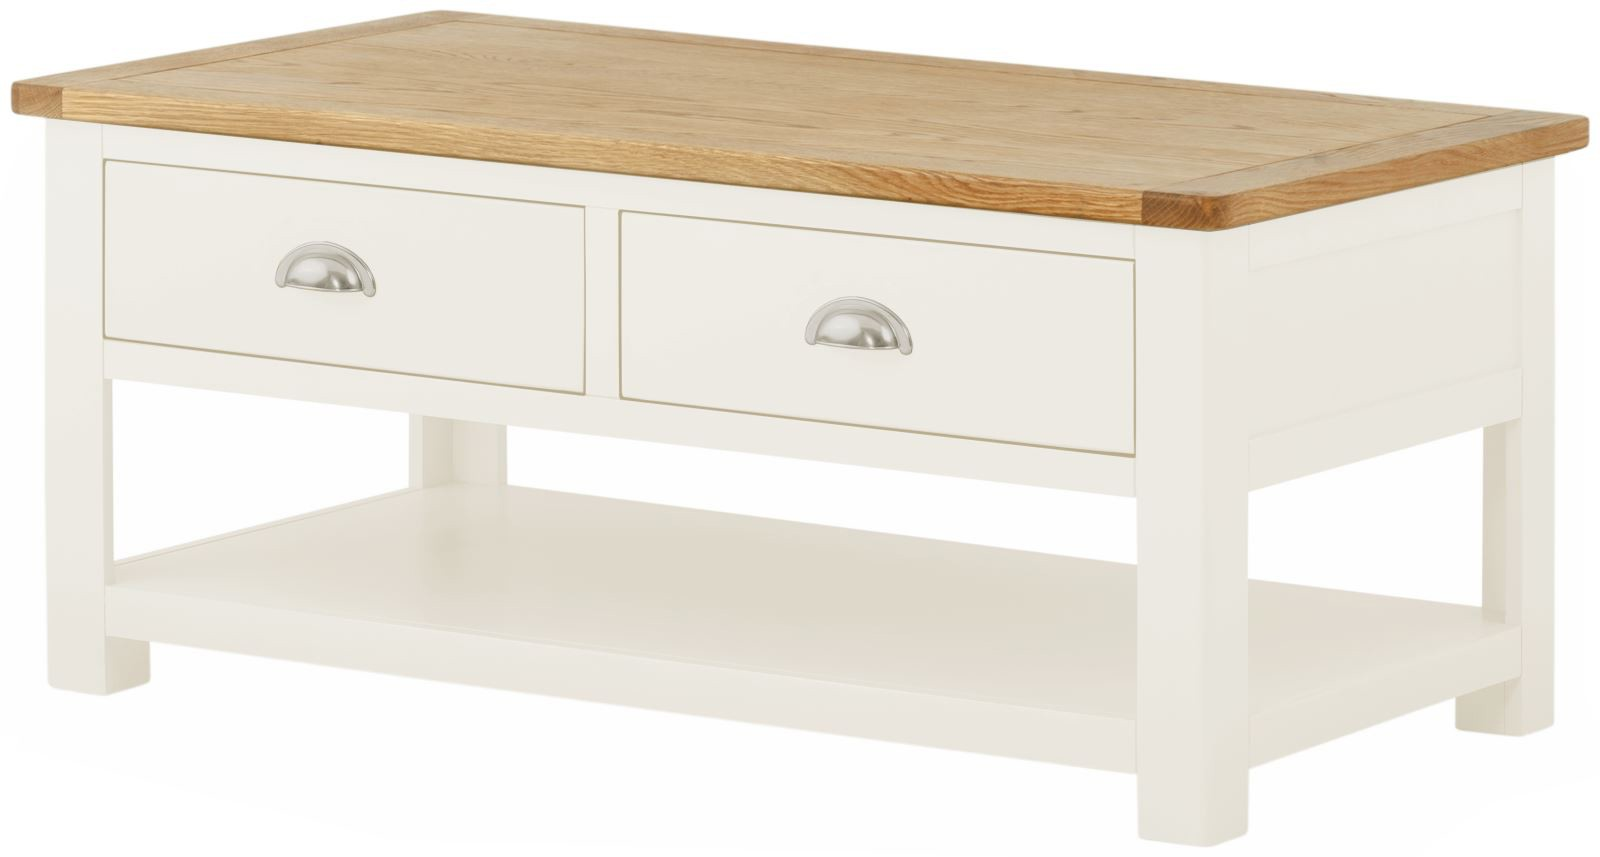 PRESTON Coffee Table with Drawers